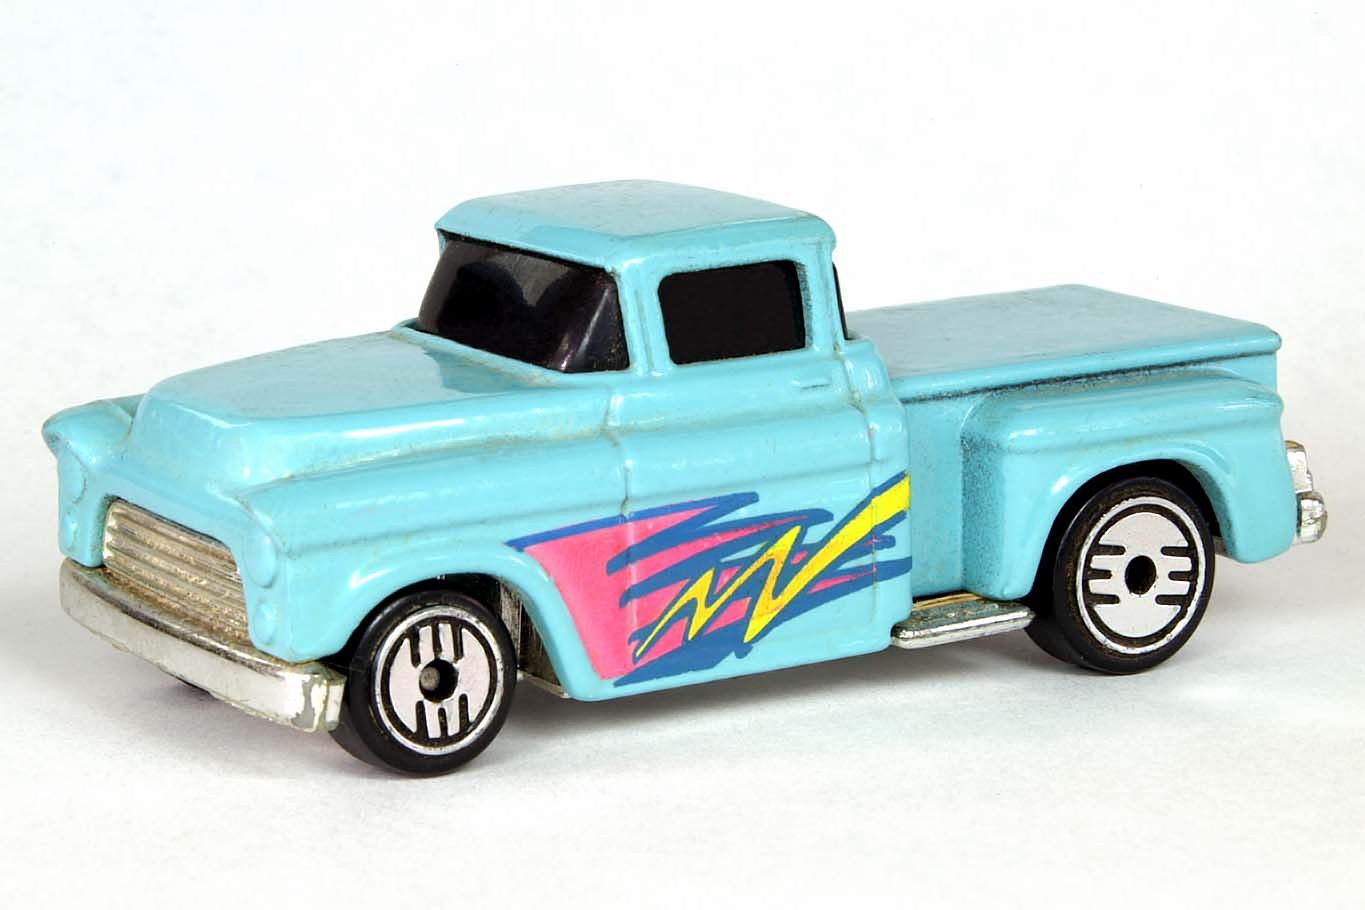 Truck 56 chevy truck : 56 Flashsider | Hot Wheels Wiki | FANDOM powered by Wikia